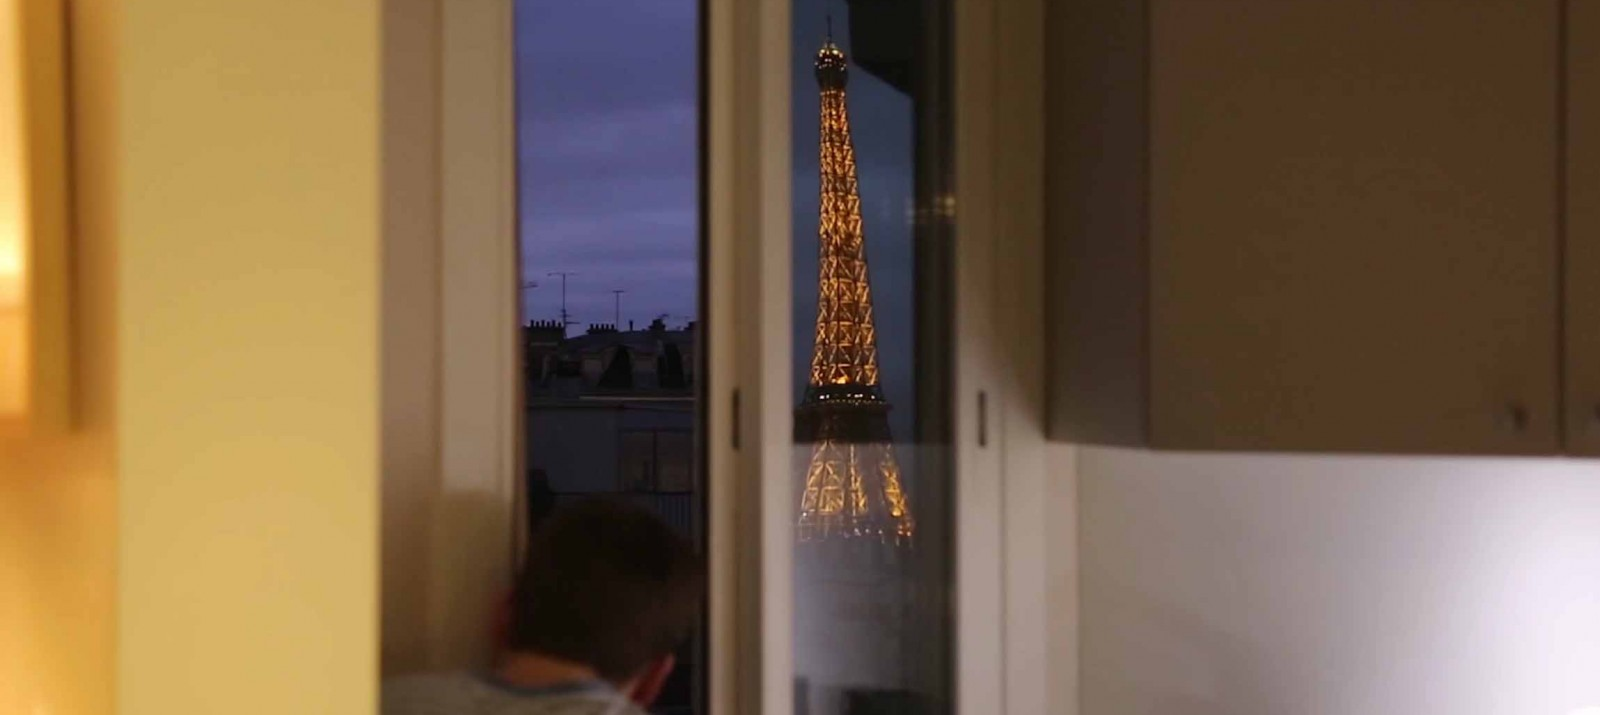 Man Builds Giant Periscope Sees Eiffel Tower From Bed